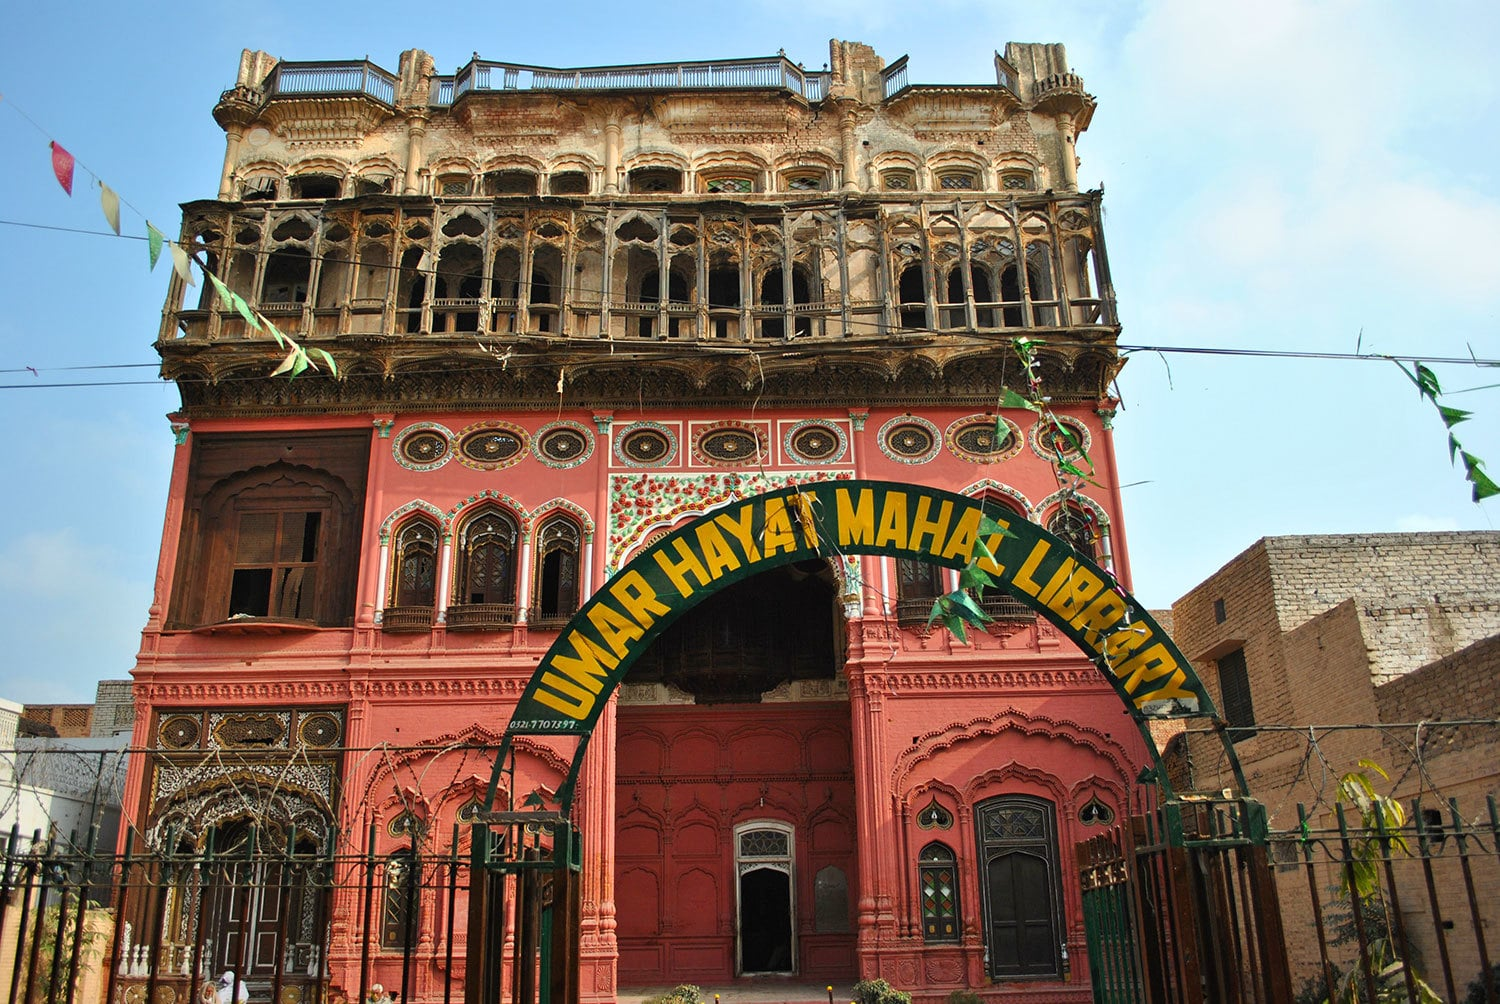 Its construction began in 1923. The house was complete by 1930, with a cost of over 200,000 rupees.